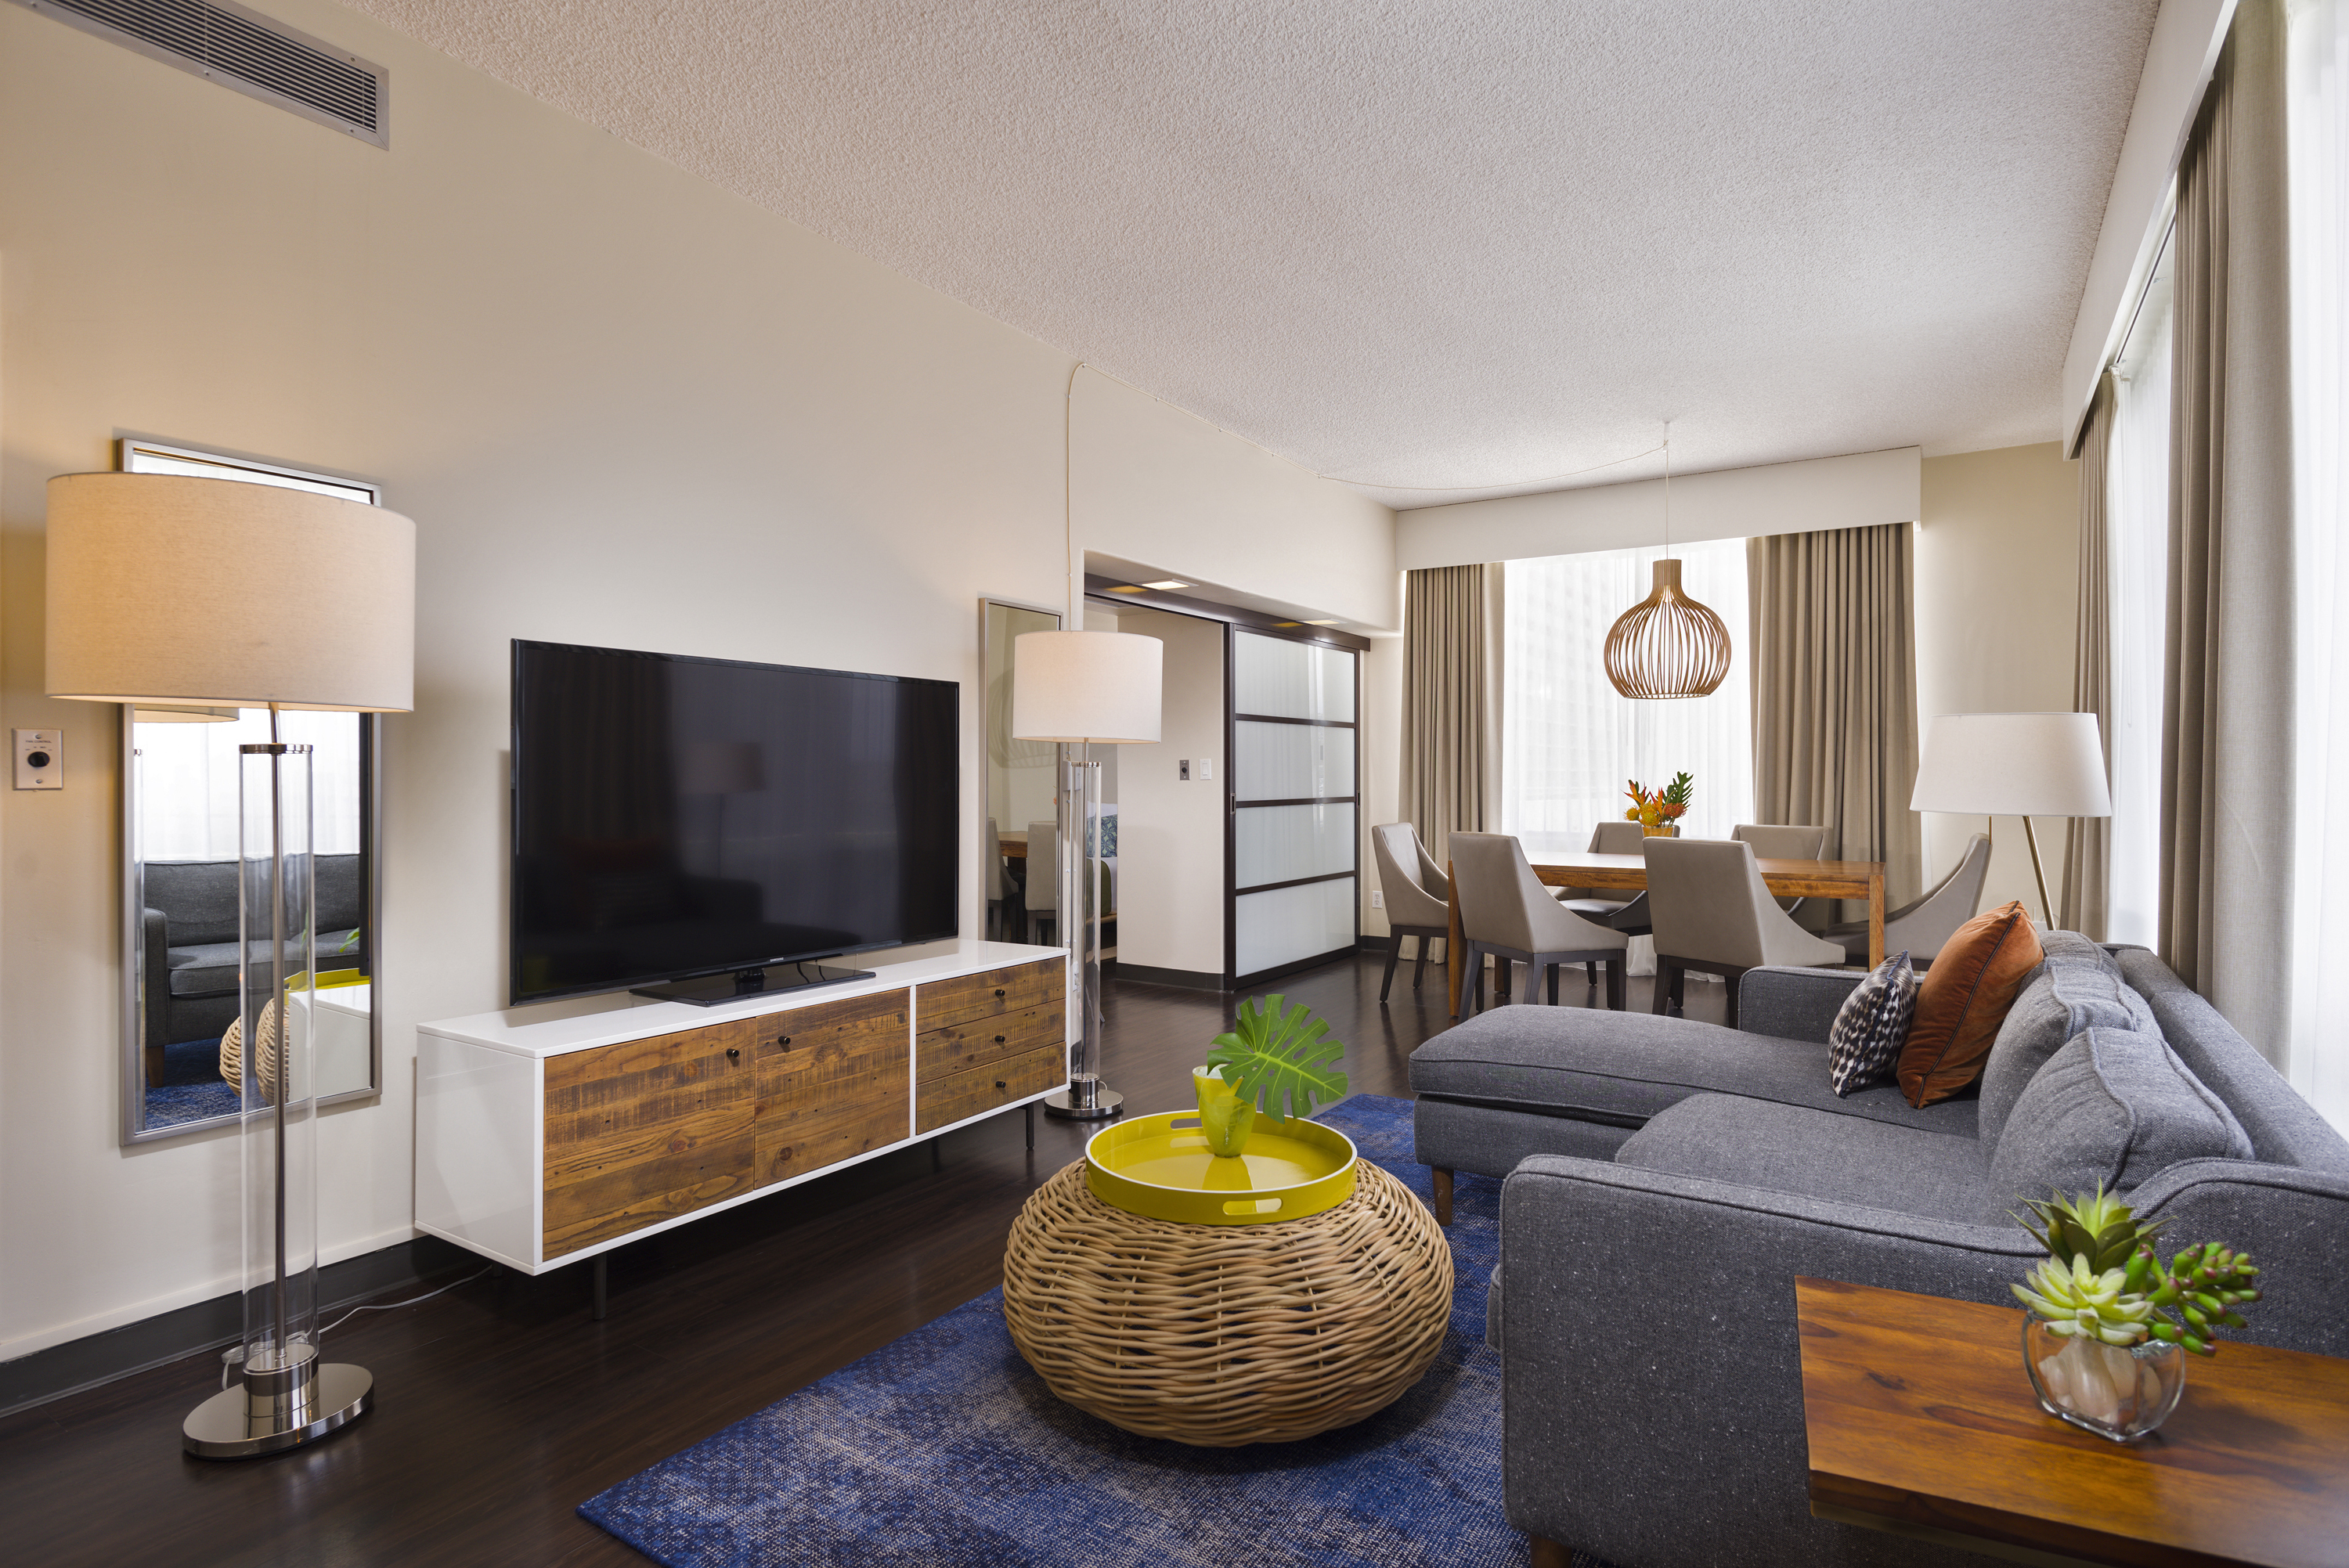 Hotel Penthouse Gets in Bed with AirBnB - Airbnb consumers seeking one-of-a-kind lodging options now have access to the unique Aqua Ohia Waikiki's ocean view 2-bed, 2-bath penthouse complete with a wraparound balcony and outdoors deck. (Photo: Business Wire)